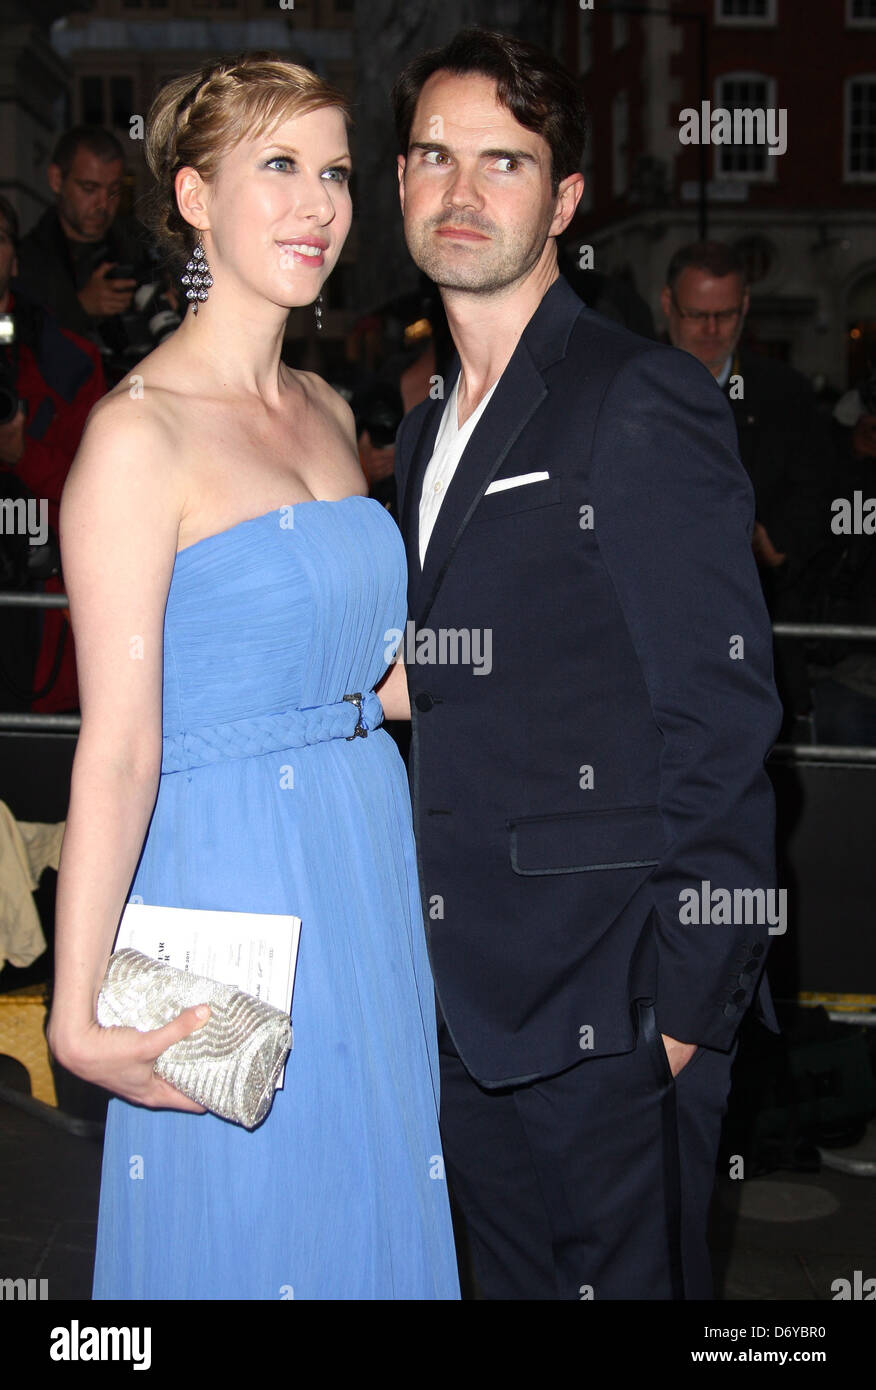 Jimmy Carr Wife Karoline Copping High Resolution Stock Photography And Images Alamy She might have roasted him better by saying that he had 'the eyes of a rapist'. https www alamy com stock photo jimmy carr with his wife karoline copping gq men of the year awards 55921012 html